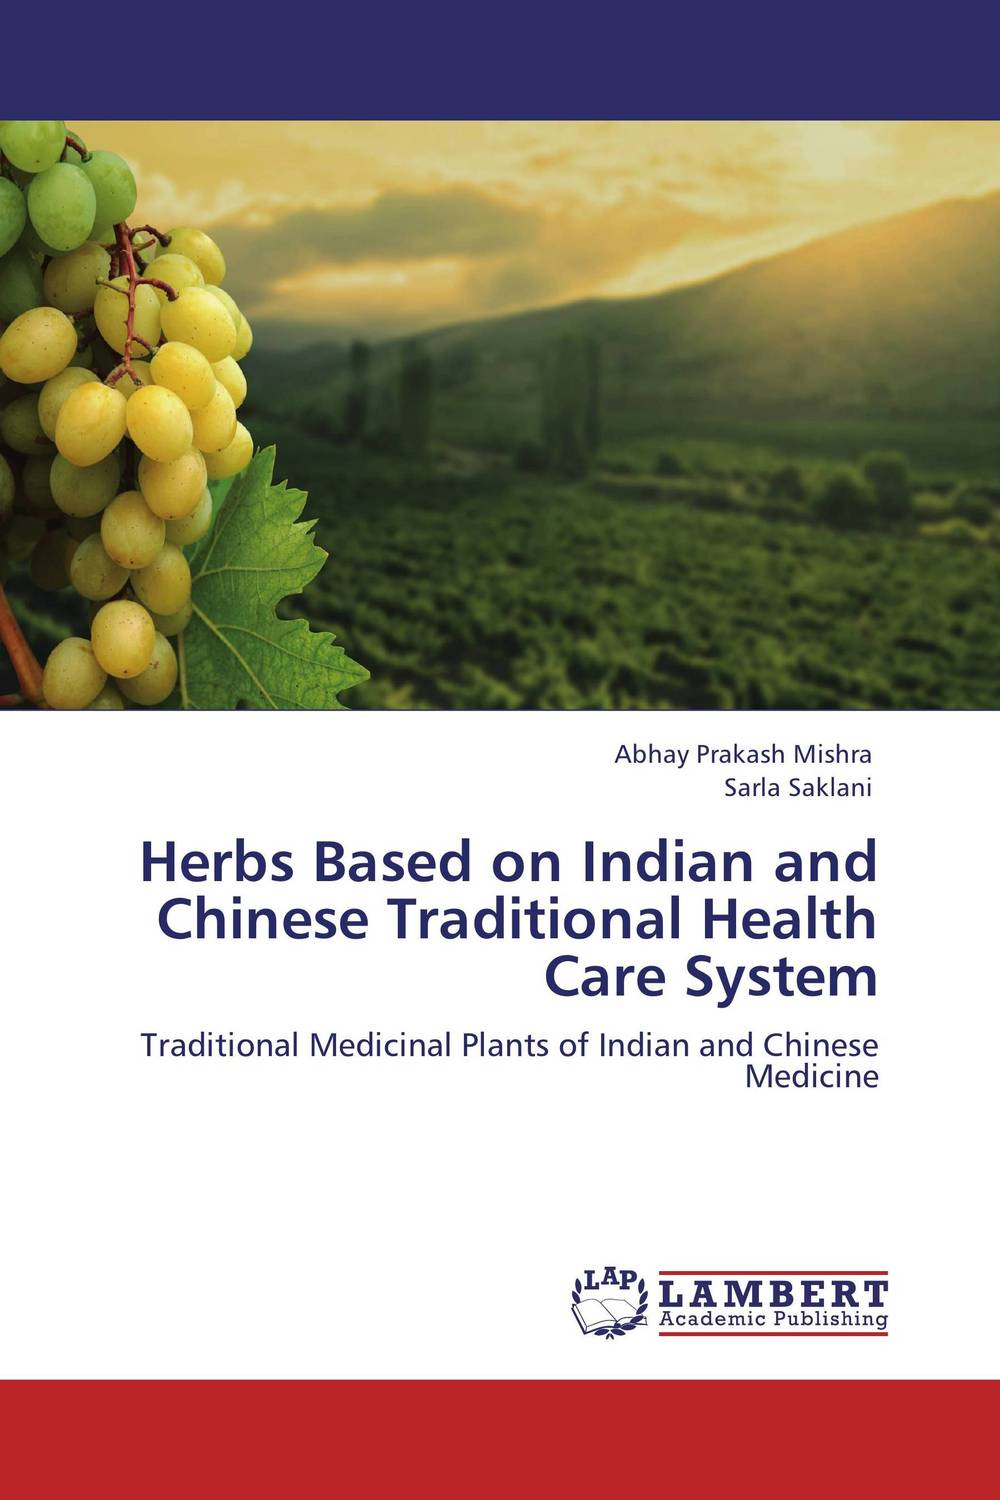 Herbs Based on Indian and Chinese Traditional Health Care System rakesh kumar khandal and sapana kaushik coal tar pitch with reduced pahs and thermosets based on it